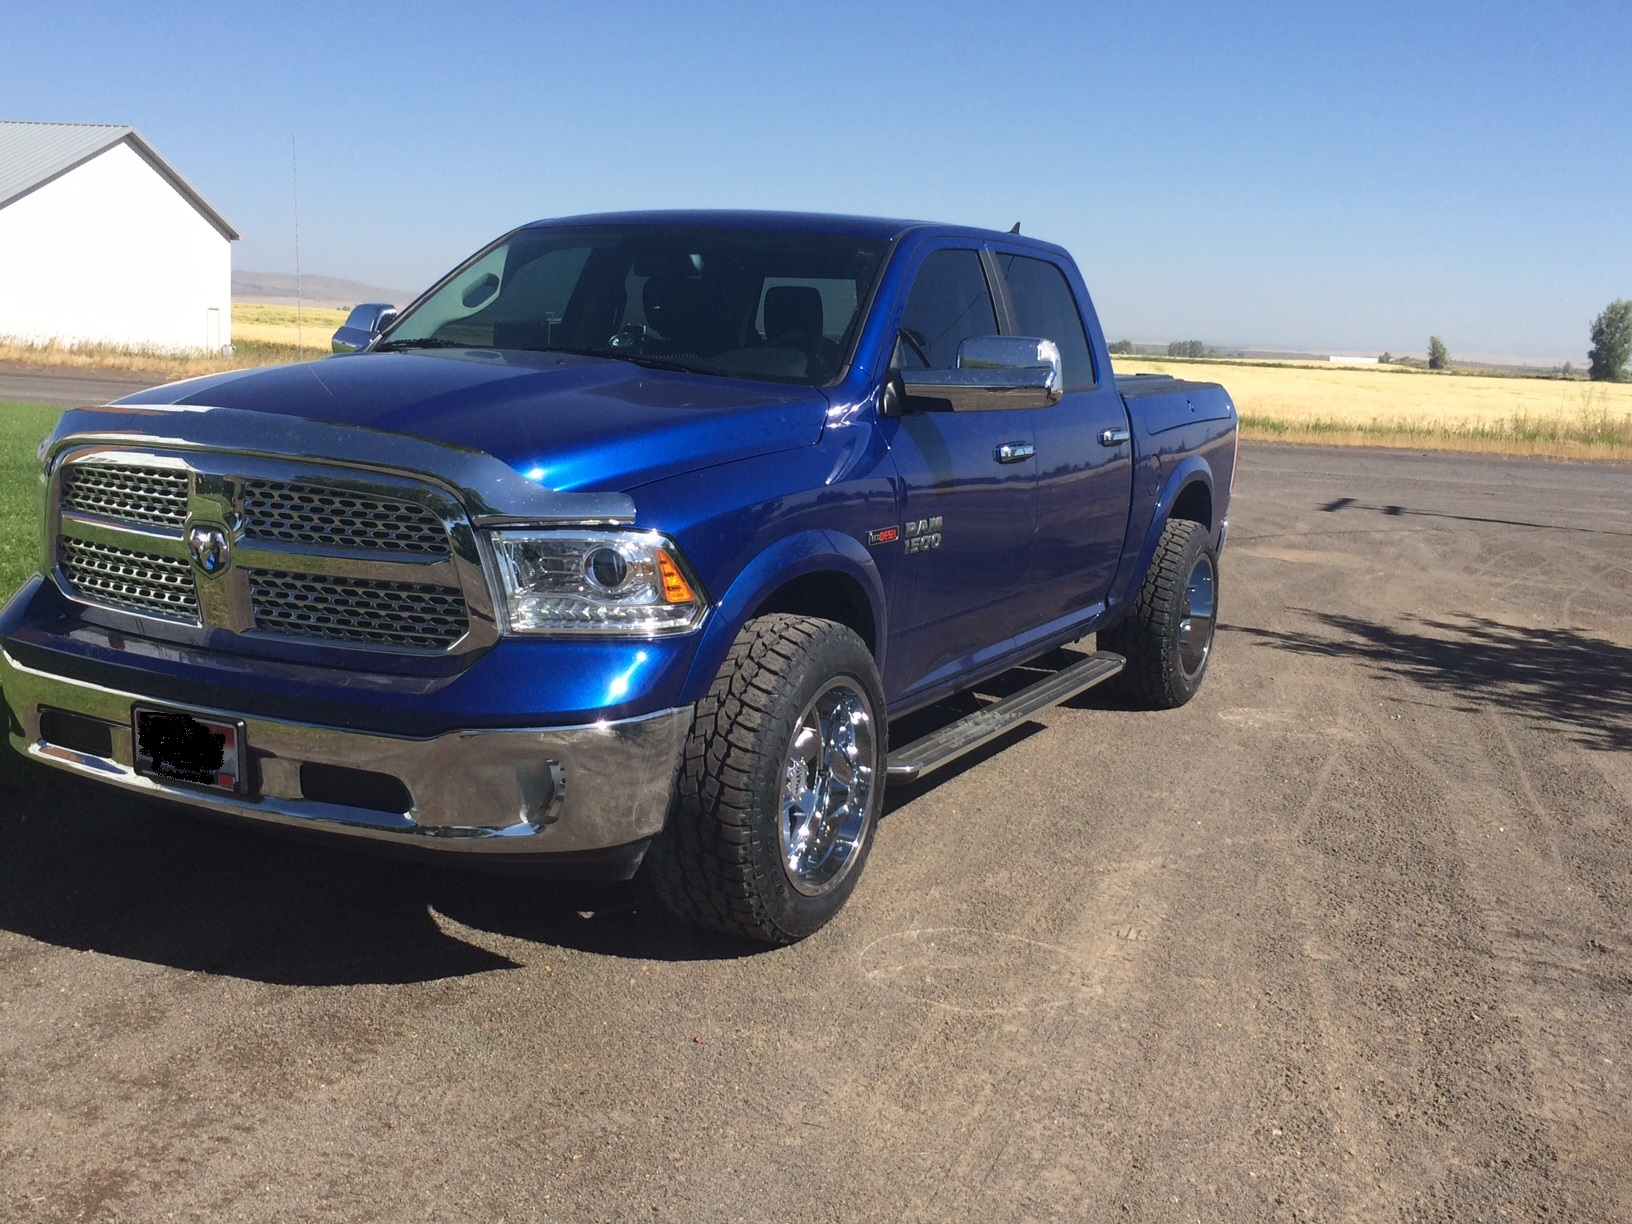 07 Dodge Ram 1500 Accessories >> 20x12 Wheels will they fit?